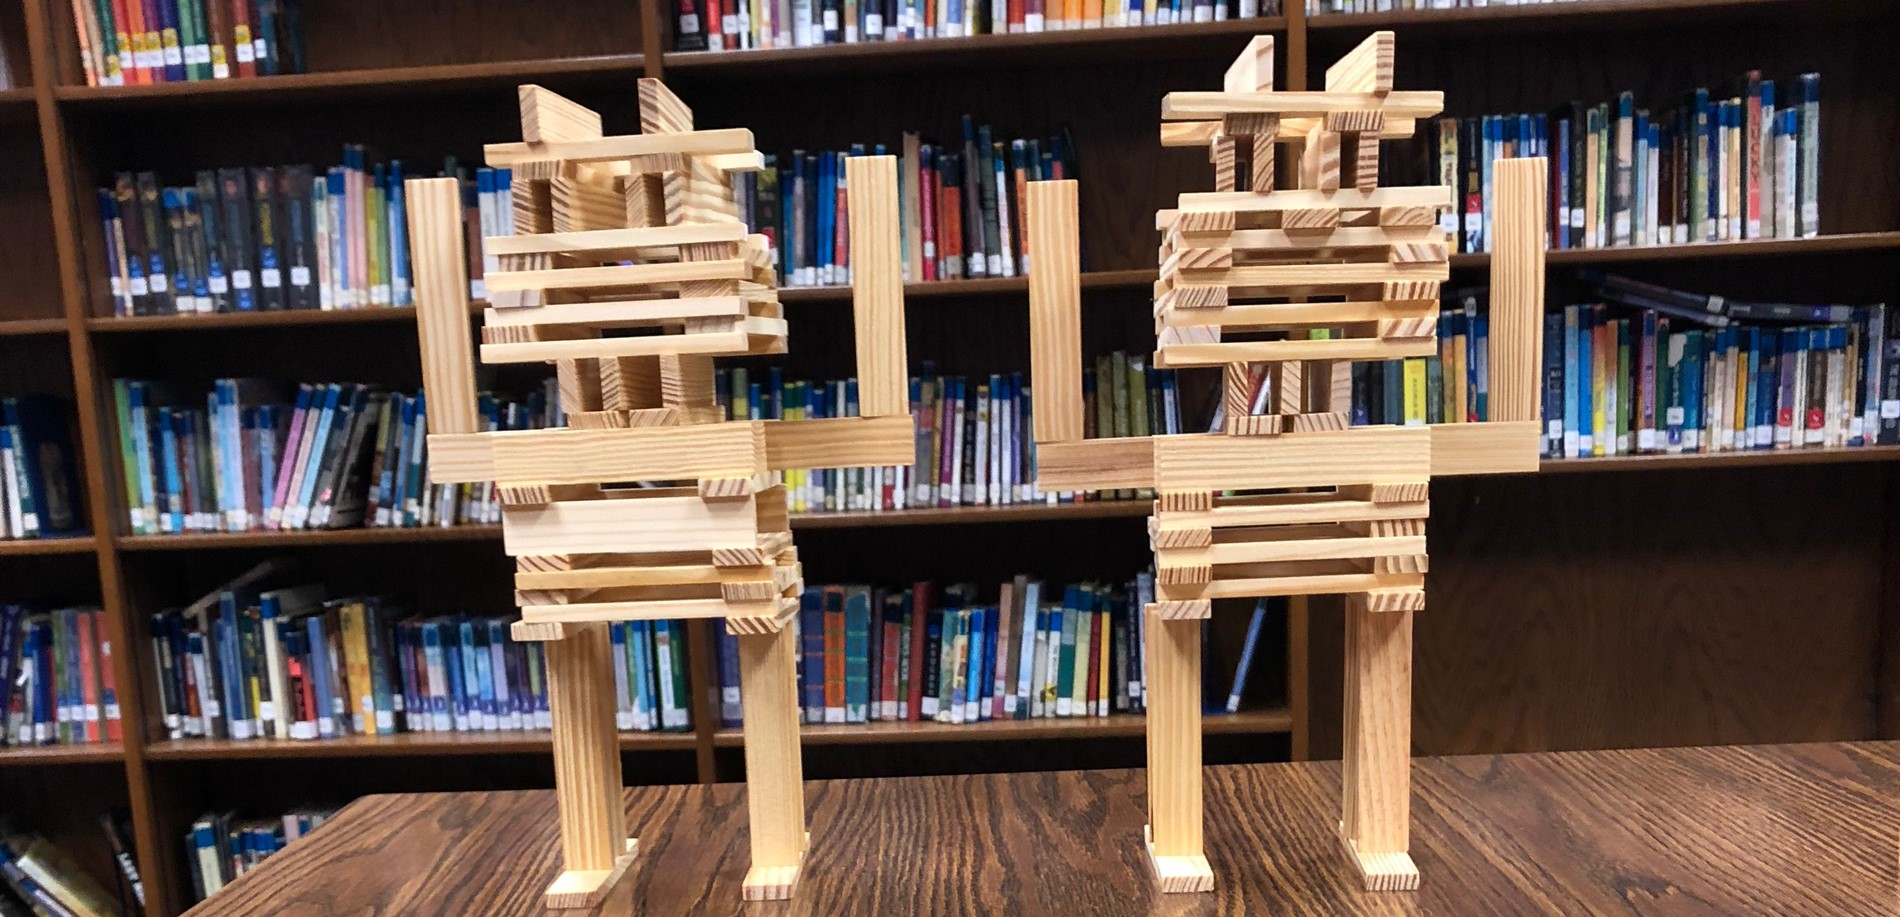 students used KEVA planks to build 2 structures that look like robots in our library media center makerspace.